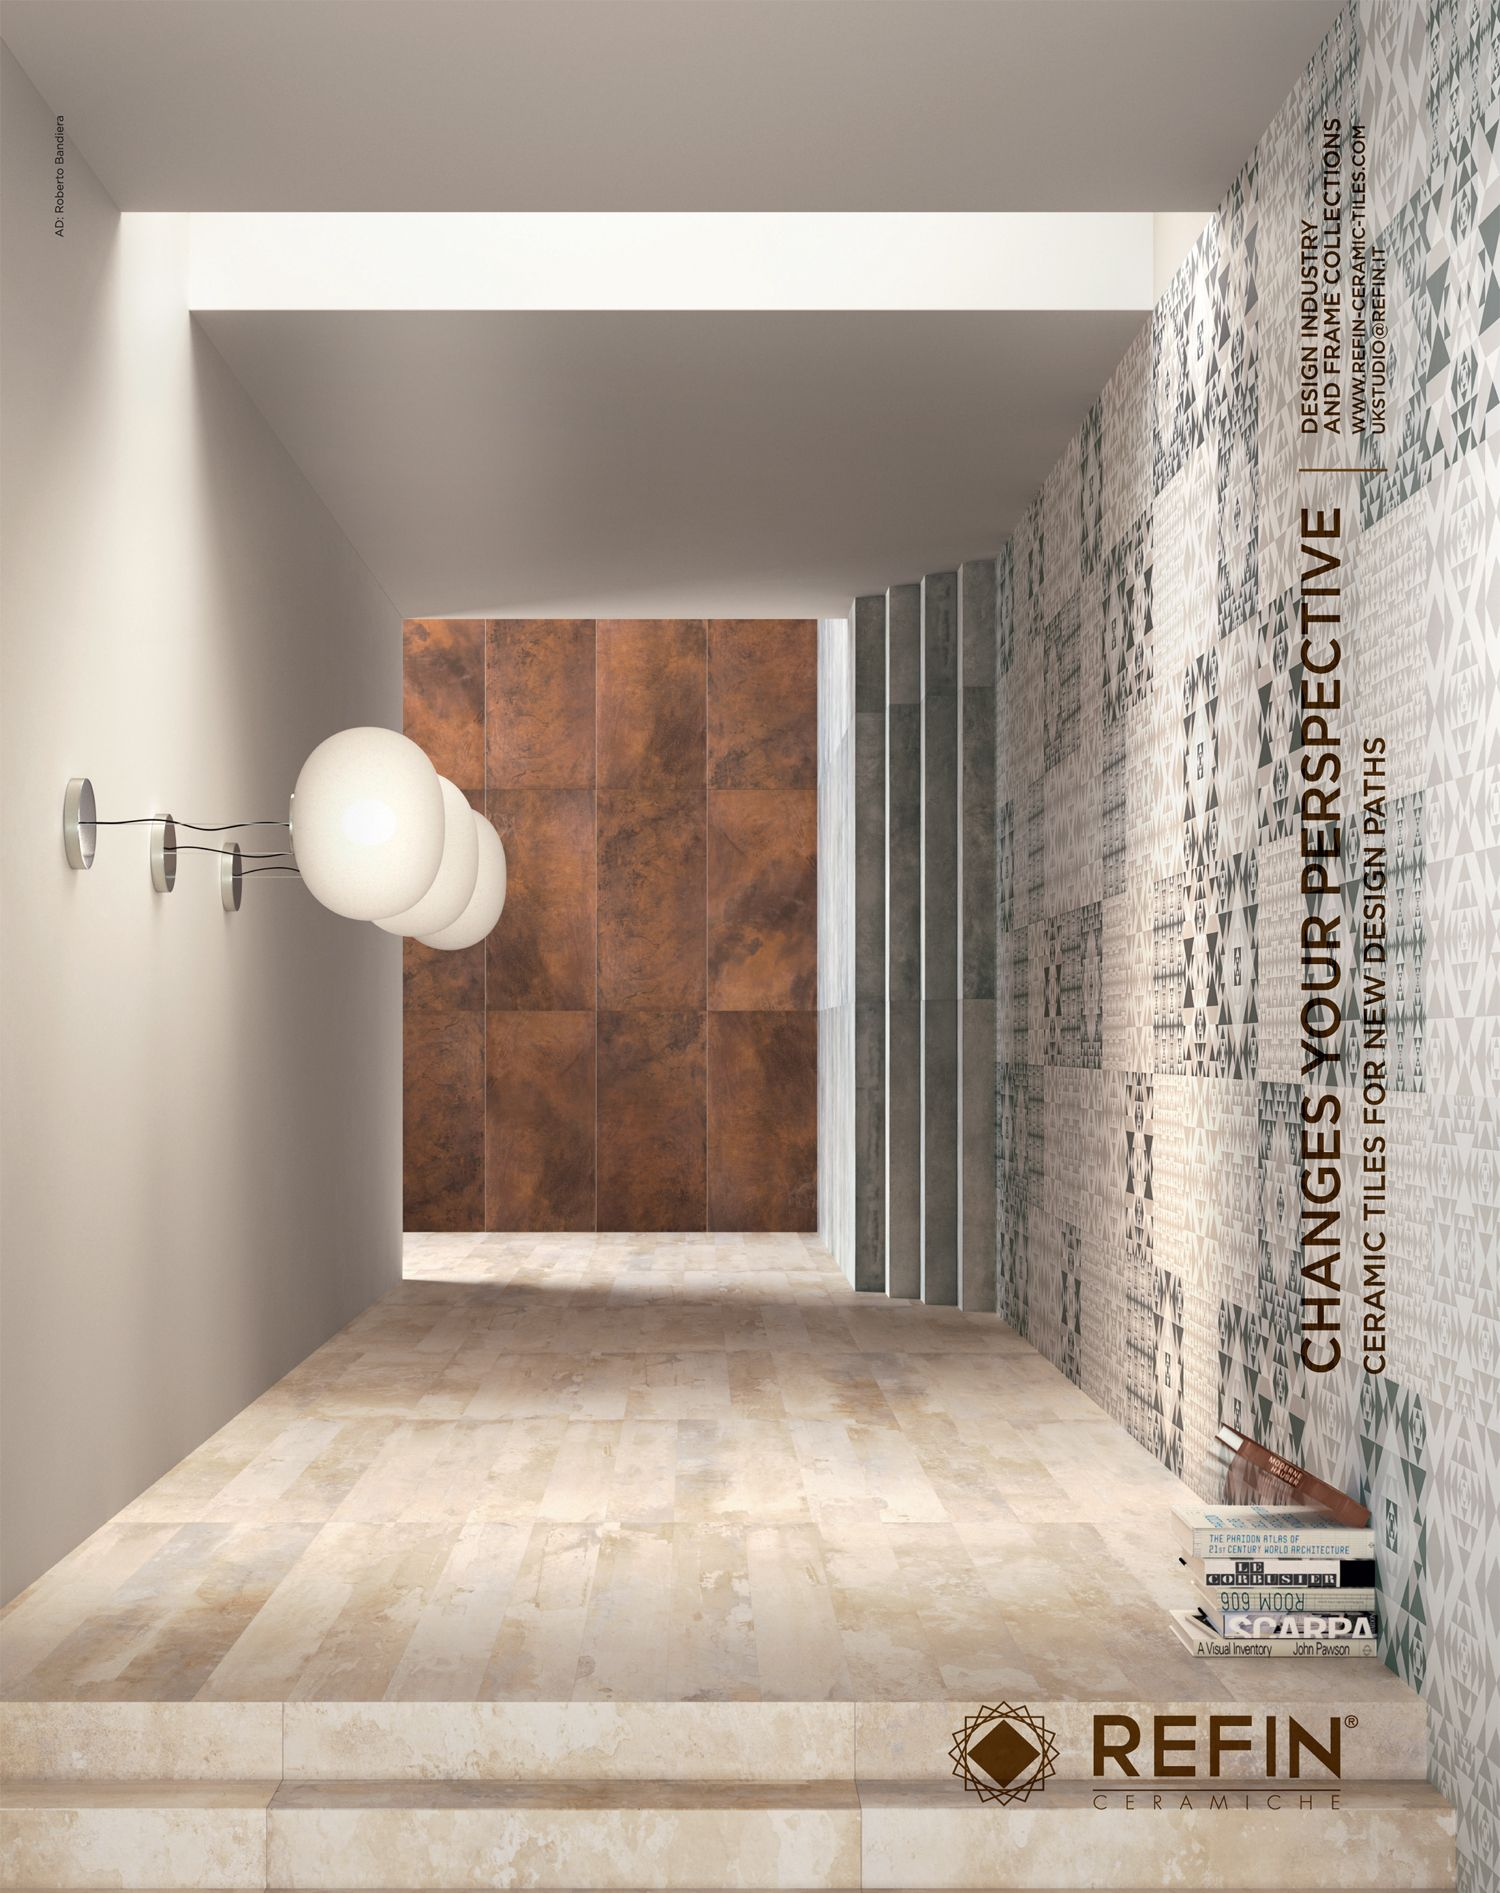 Changes your perspective ceramic tiles for new design paths changes your perspective ceramic tiles for new design paths doublecrazyfo Choice Image